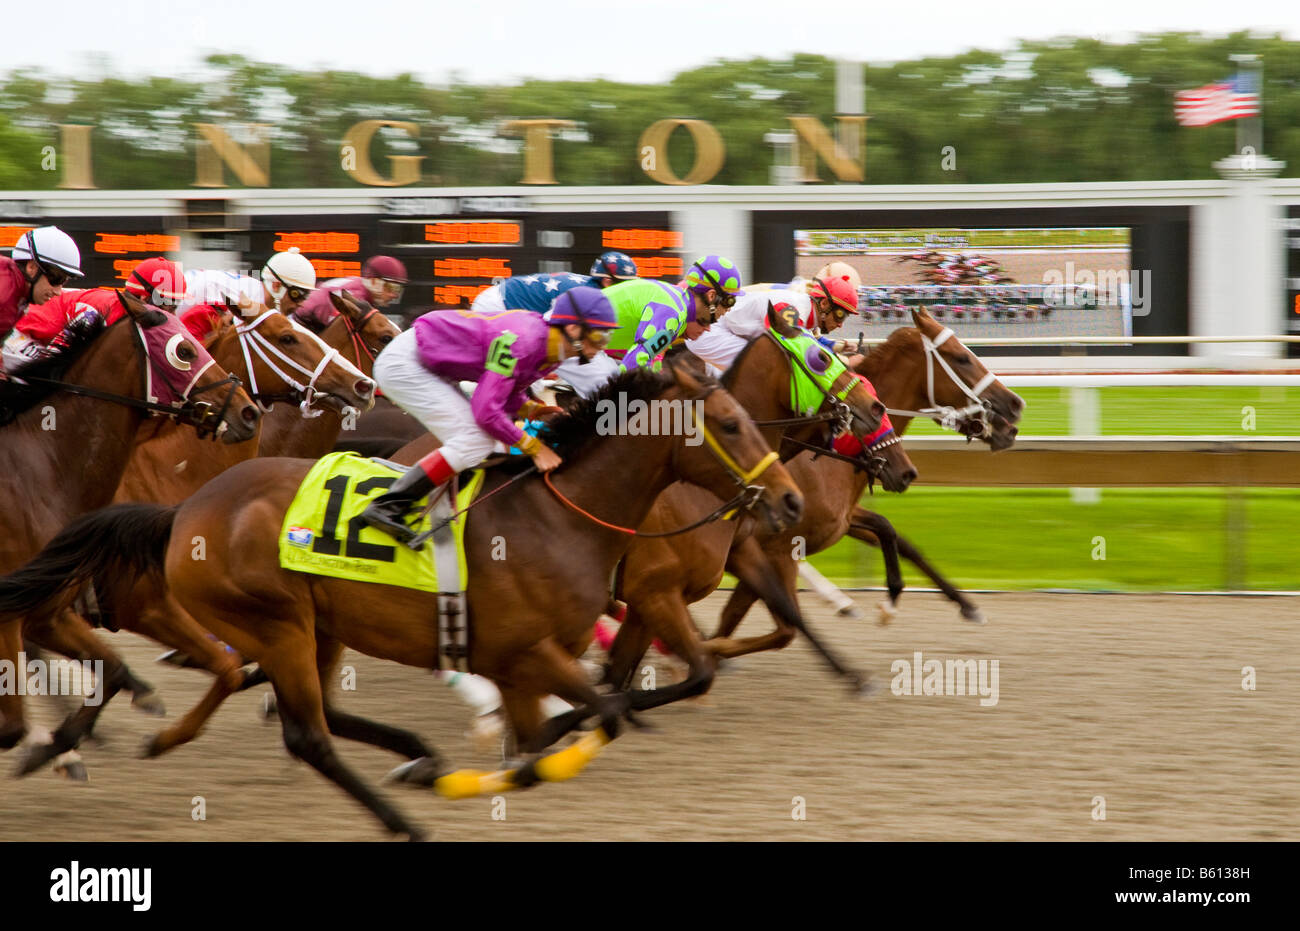 Group of thoroughbreds & jockey's straining to reach the finish line first. - Stock Image